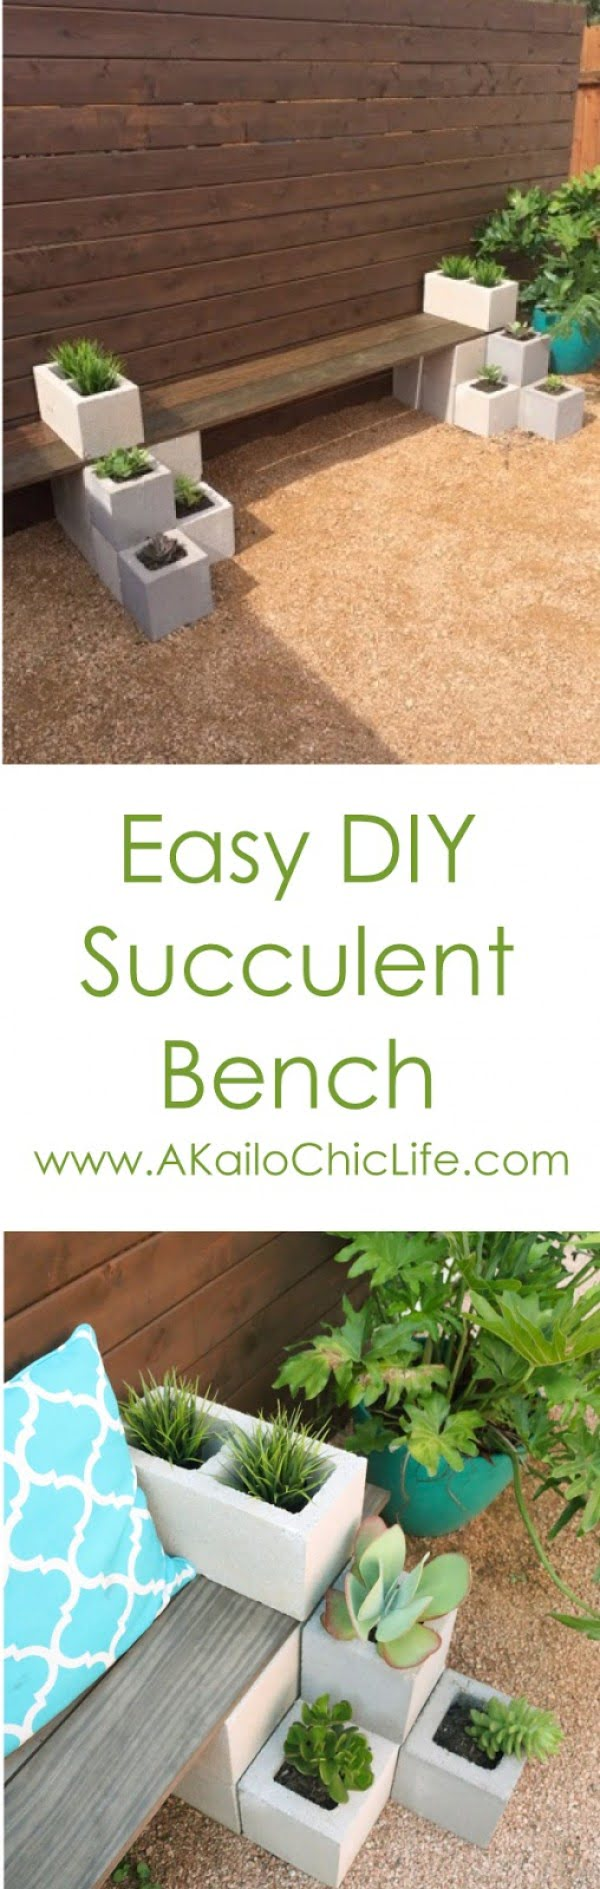 Check out how to build a DIY outdoor succulent bench